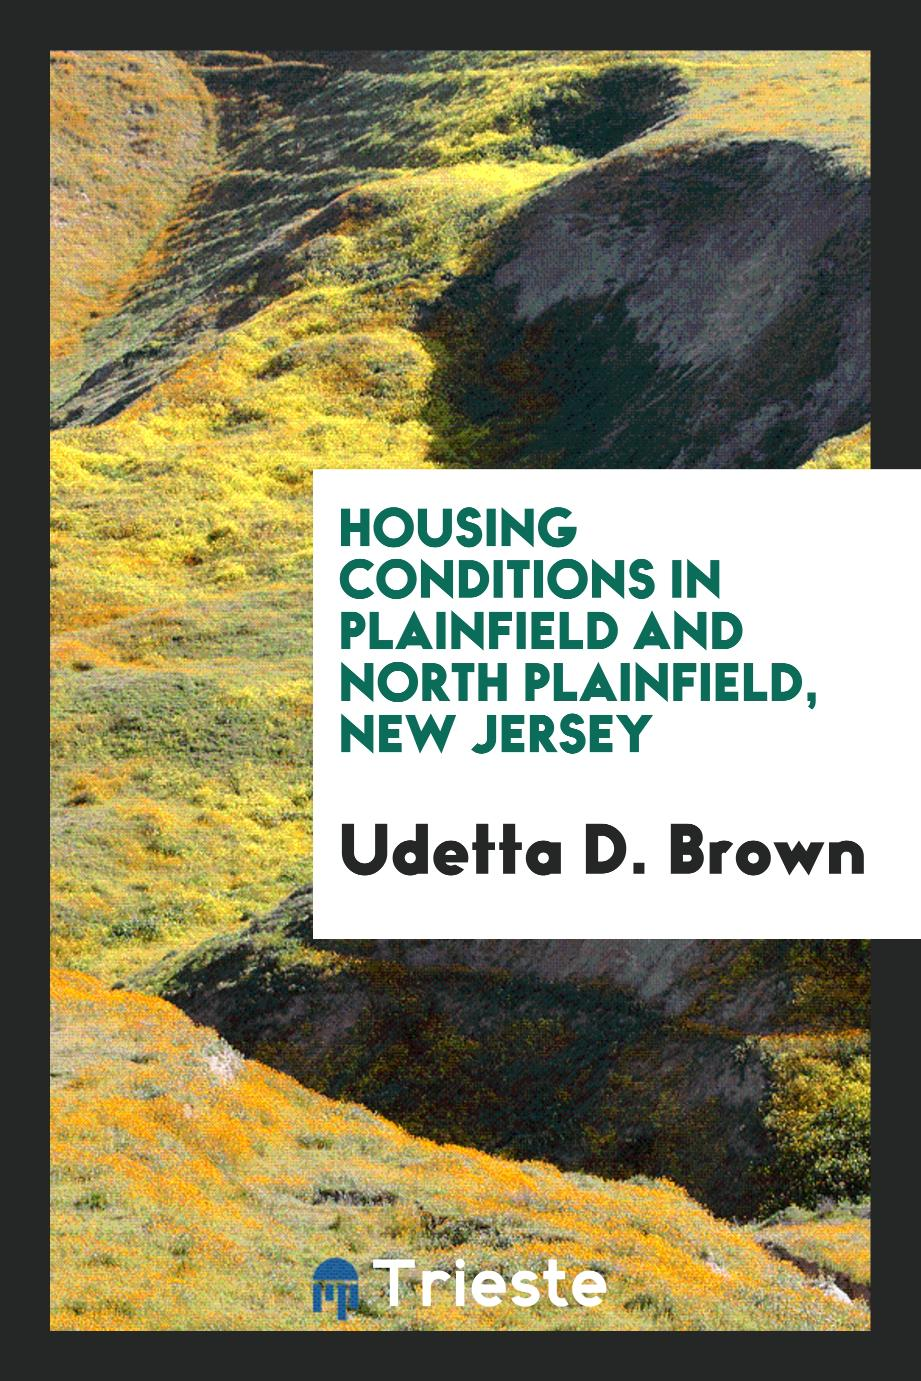 Housing Conditions in Plainfield and North Plainfield, New Jersey